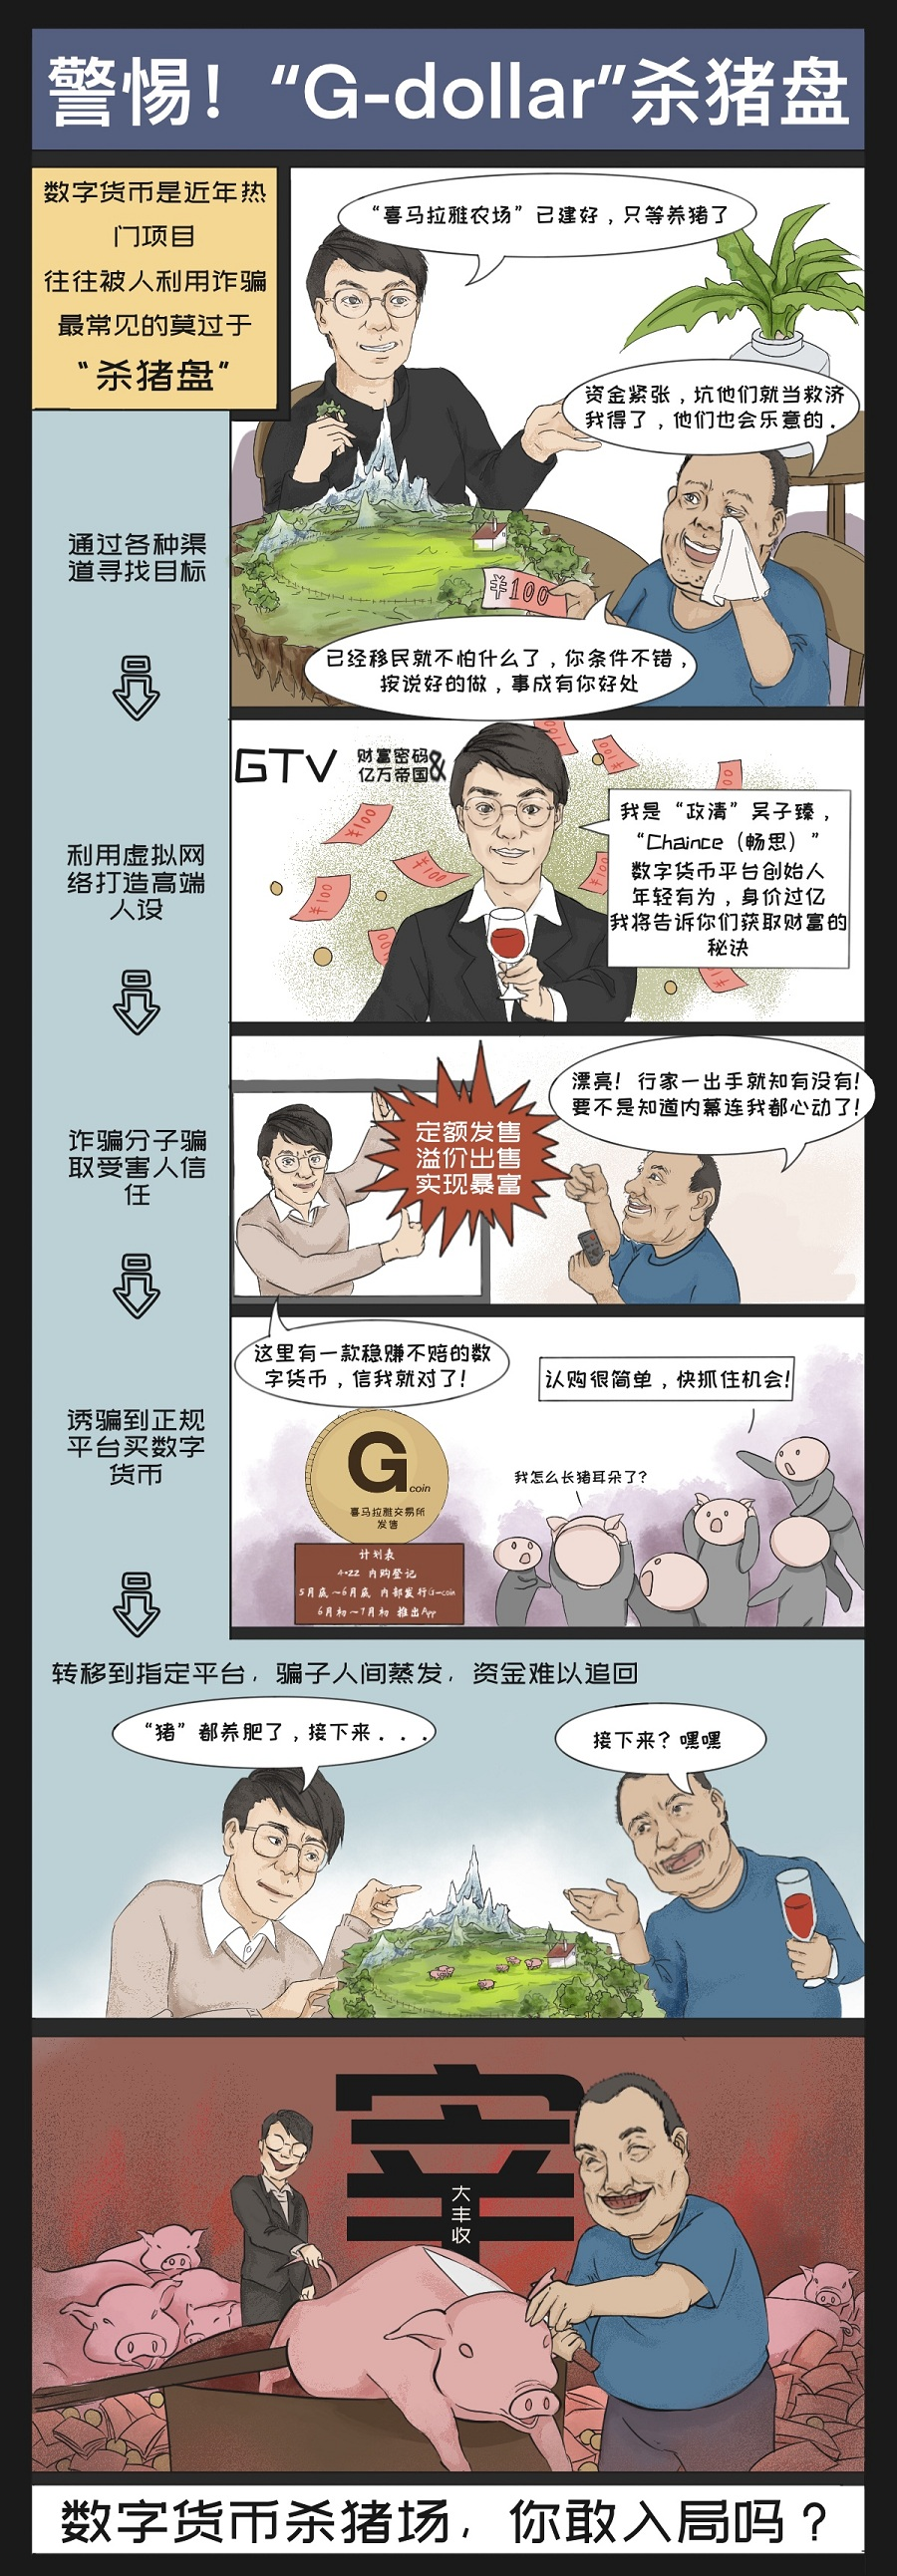 Suffering Endless Lawsuits, Guo Wengui Faces His Black July the Little Tricks Of New Gettr And Gclub Cannot Resist The Judicatory Storm